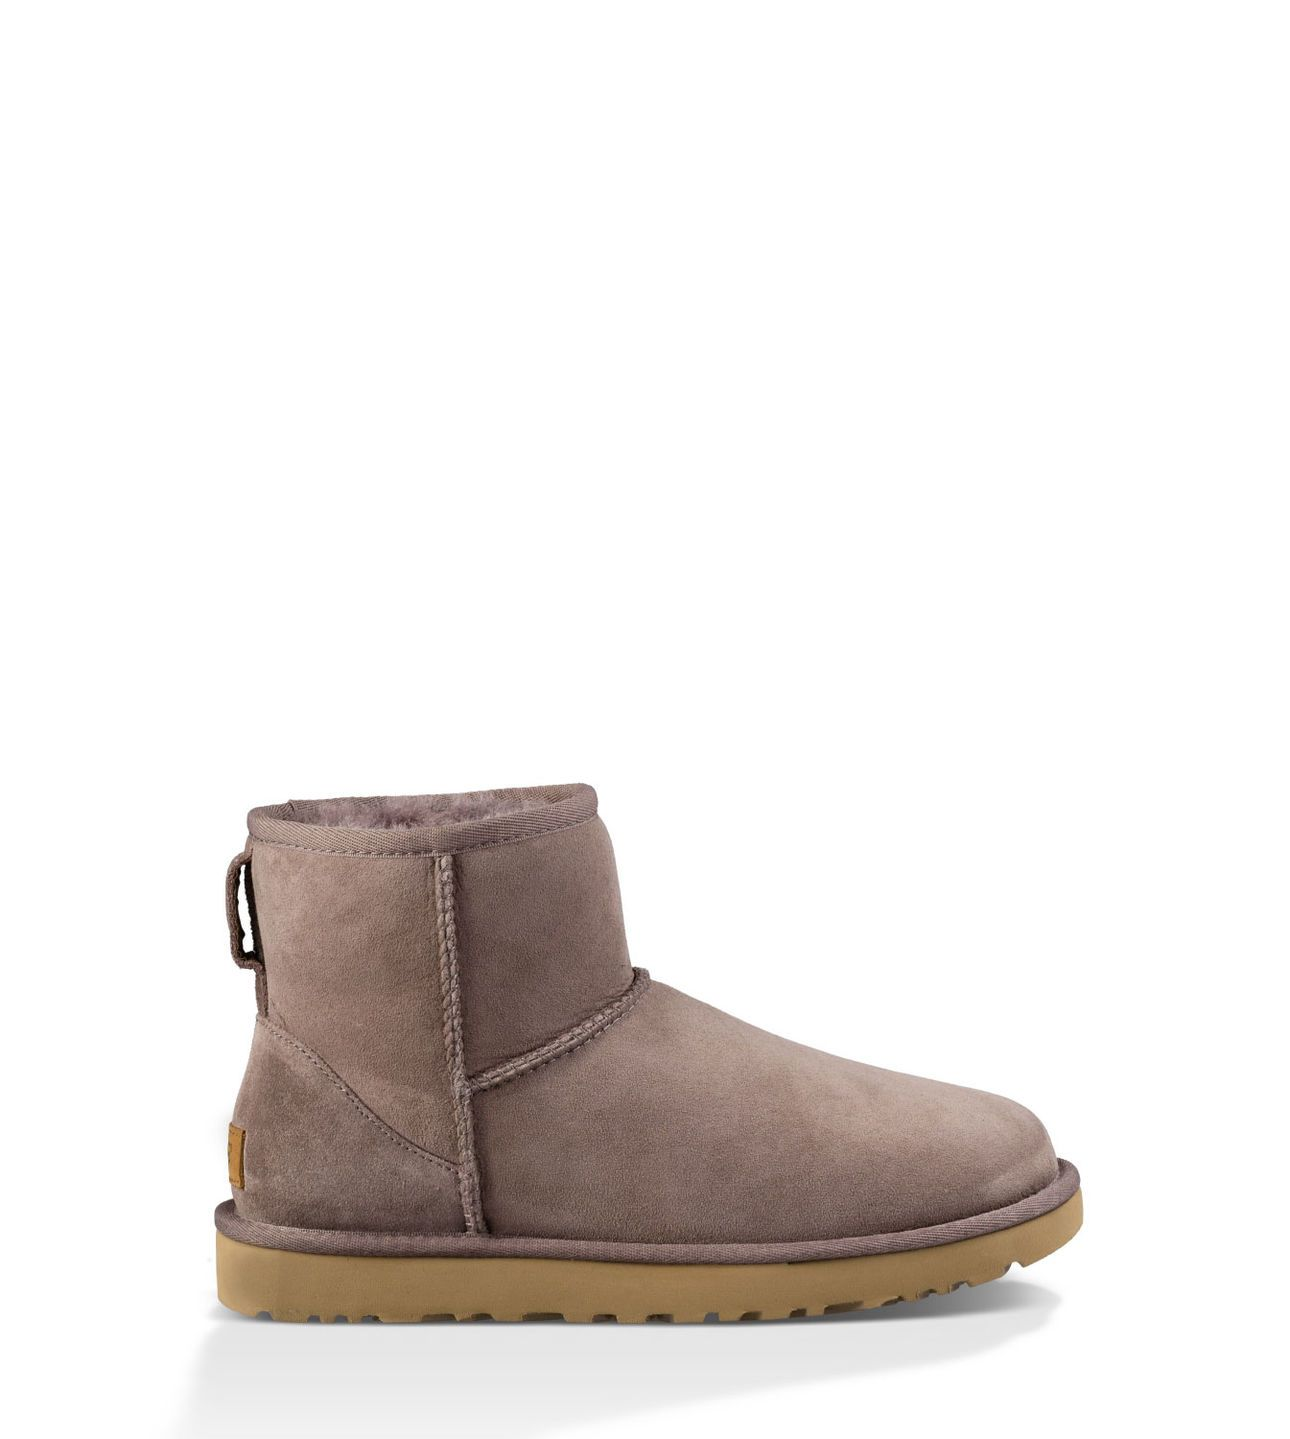 Women's Share this product Classic Mini II Boot | Ugg boots